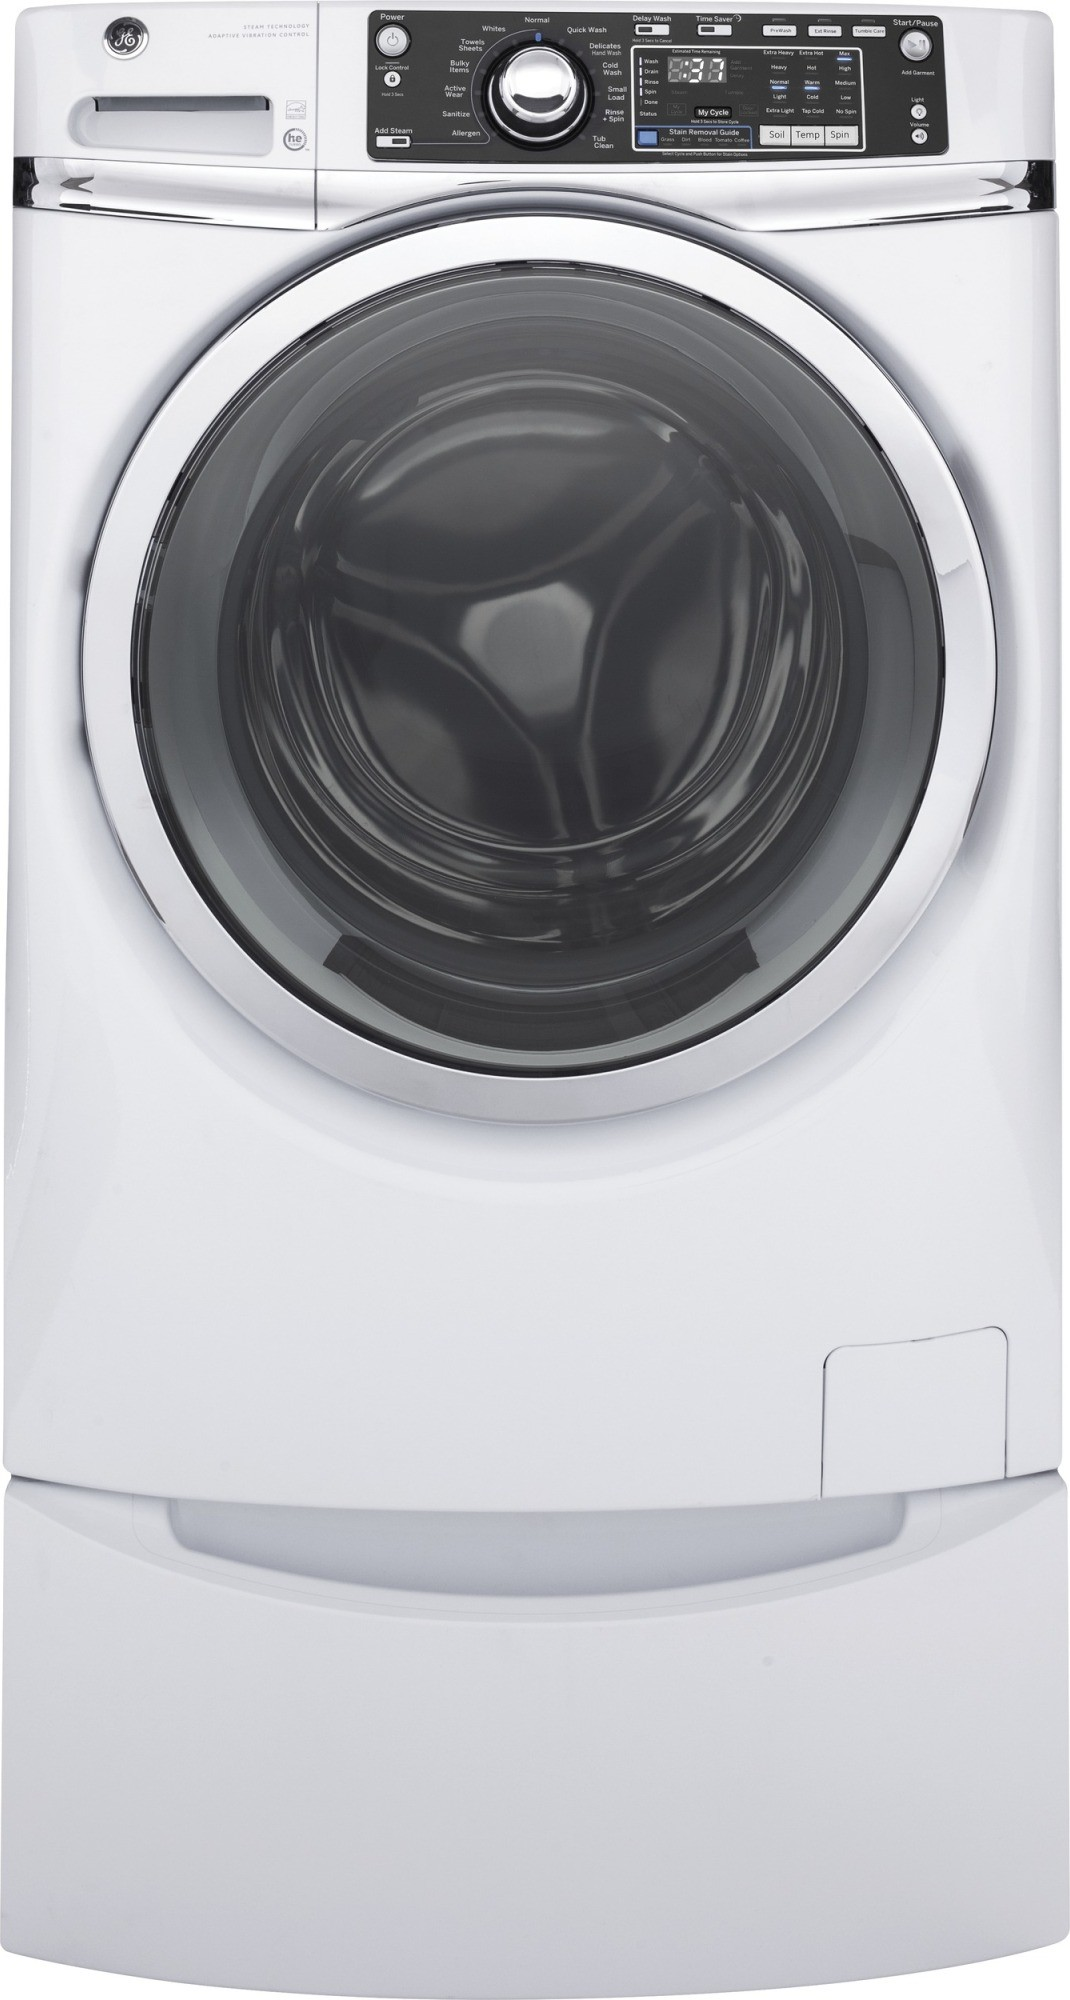 Gfw480sskww Ge 28 Quot 4 9 Cu Ft Front Load Steam Washer